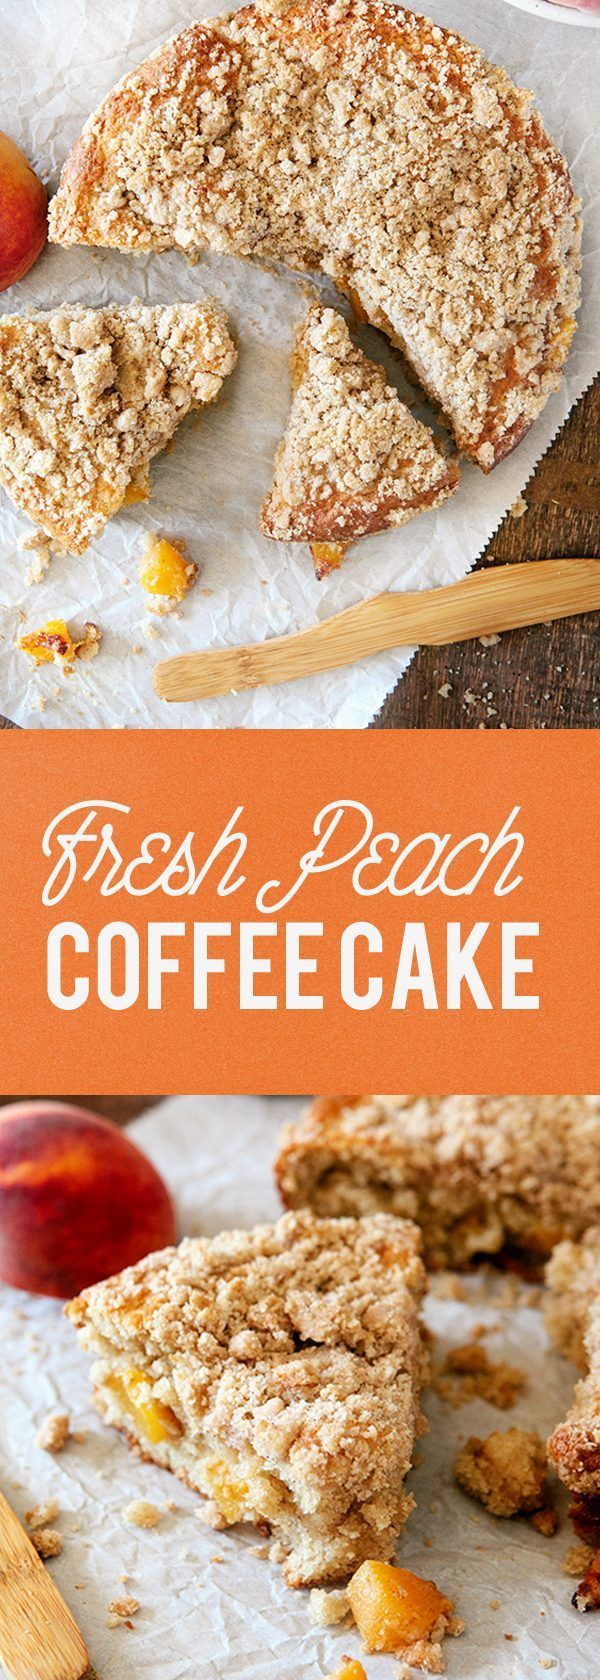 This Fresh Peach Coffee Cake is the perfect way to show off the season's juiciest peaches. Whether you pair it with your morning coffee or save it for dessert, it will be hard to eat just one slice. #cake #peach